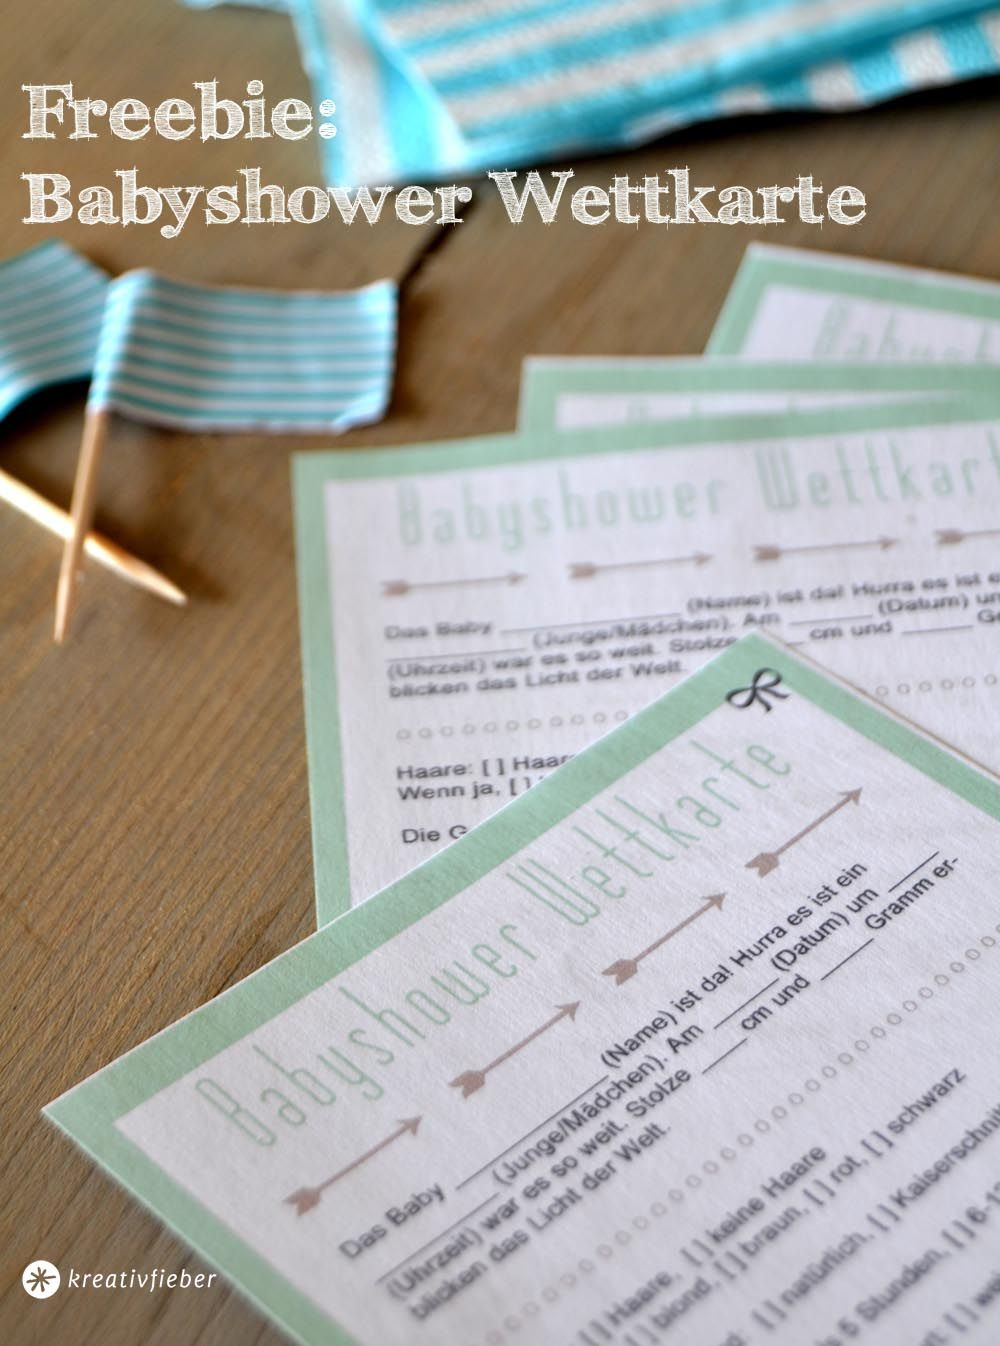 Babyshower Printable Ein Babyshower Wettspiel Zum Downloa